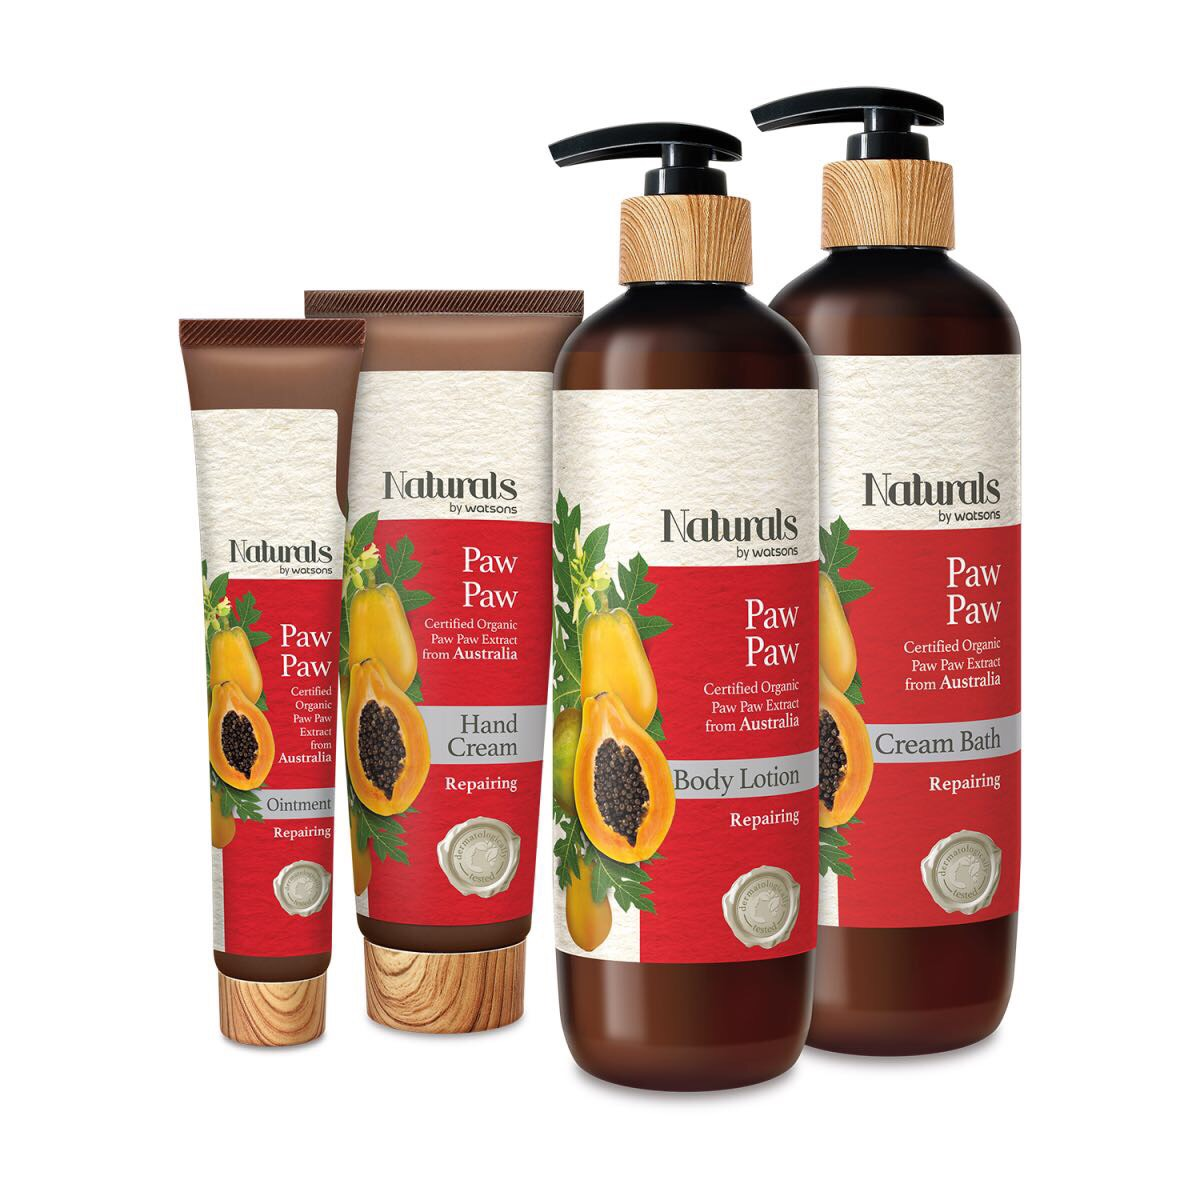 Naturals by Watsons - Paw Paw